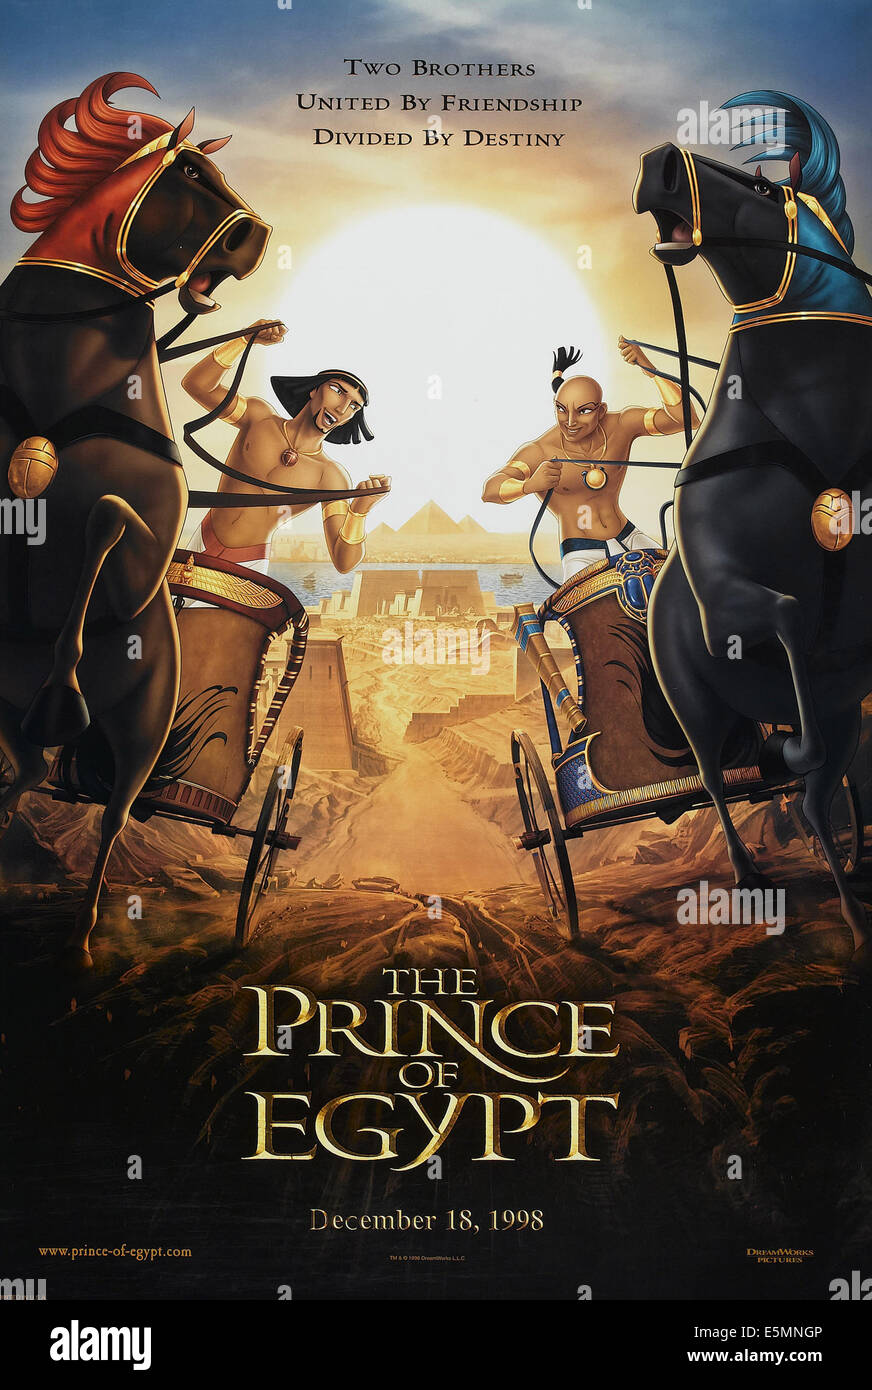 THE PRINCE OF EGYPT, US advance poster art, 1998. ©DreamWorks/courtesy Everett Collection - Stock Image